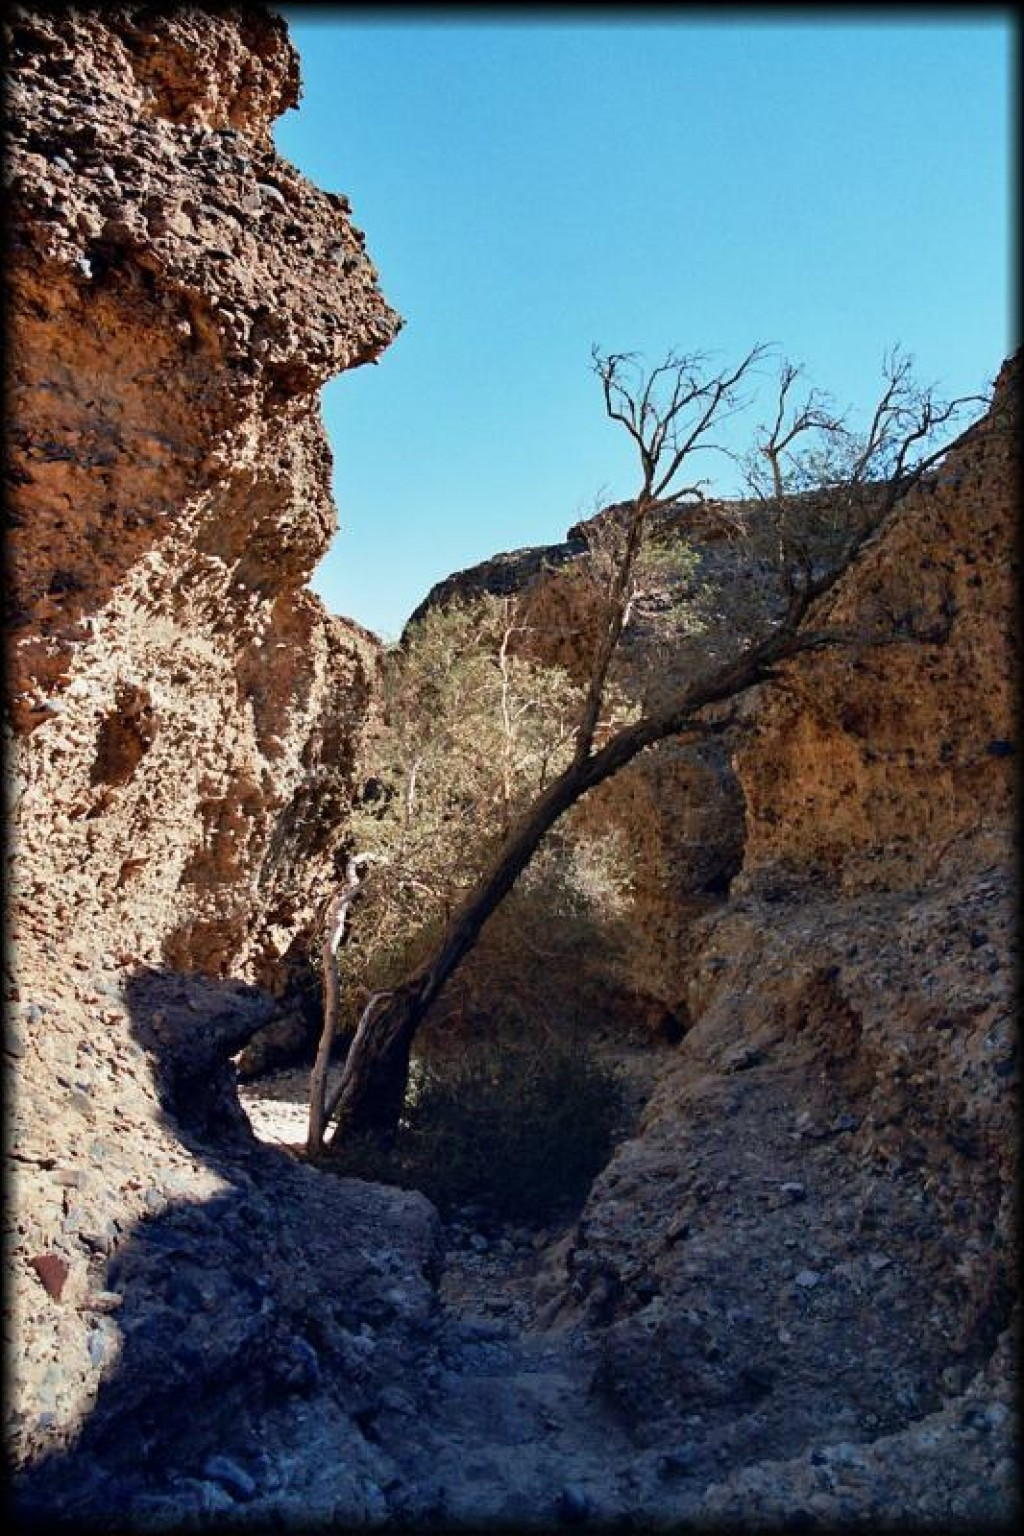 We visited Sesriem Canyon in the Namib Desert as part of the Crazy Kudu Safari.